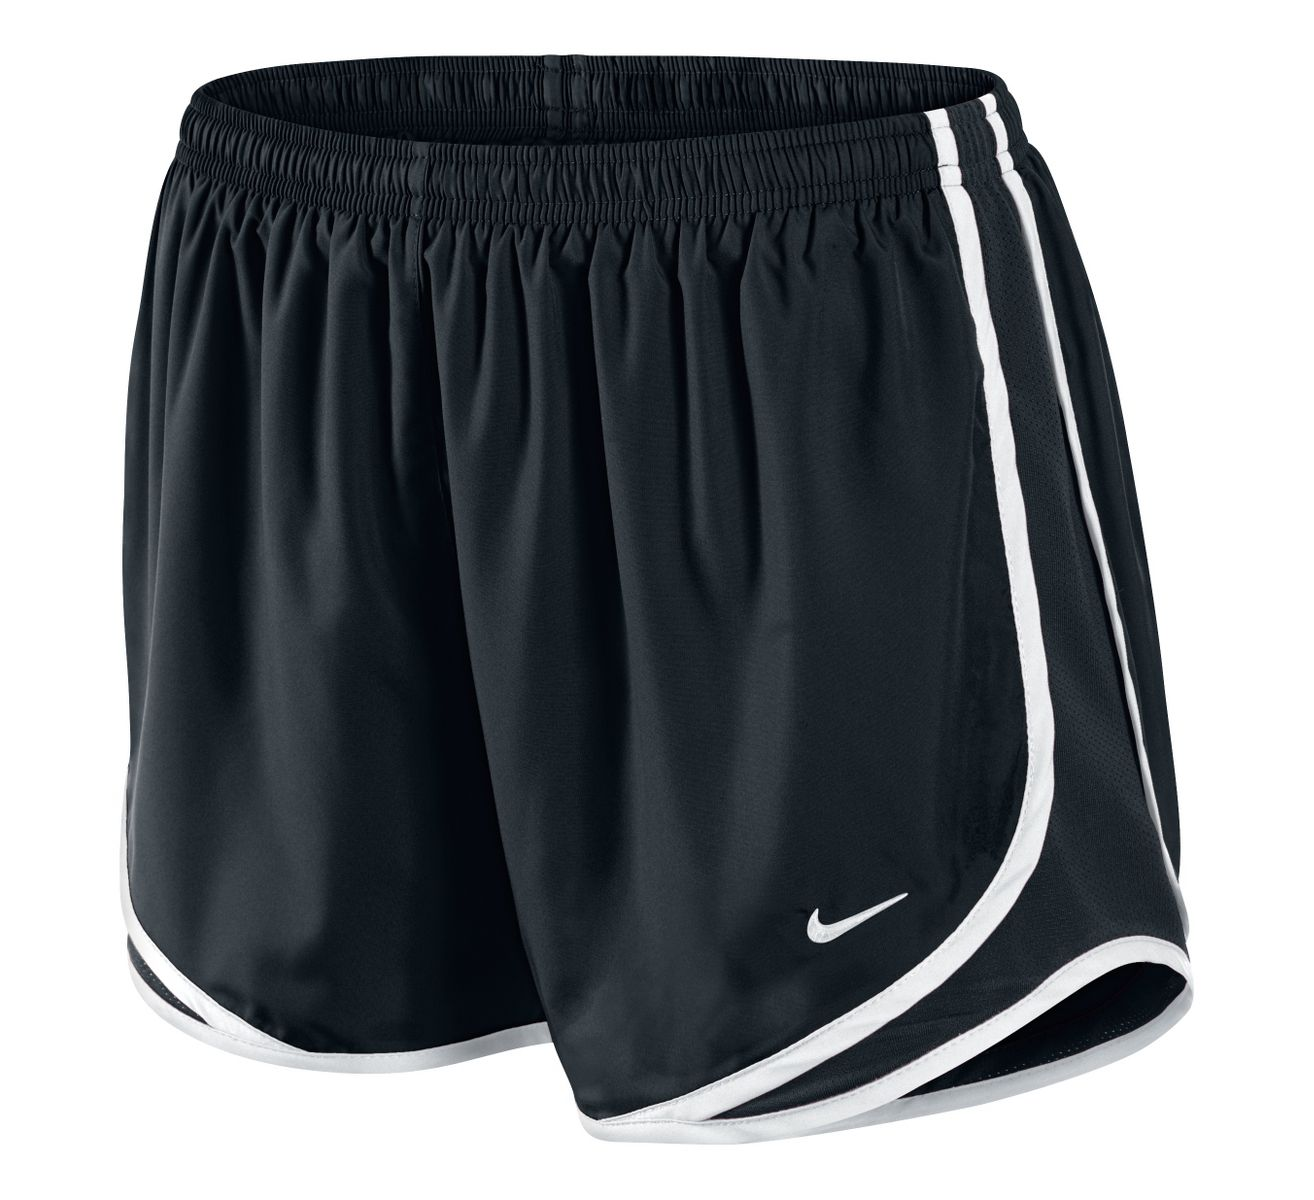 Womens Nike Tempo Track Lined Shorts at Road Runner Sports